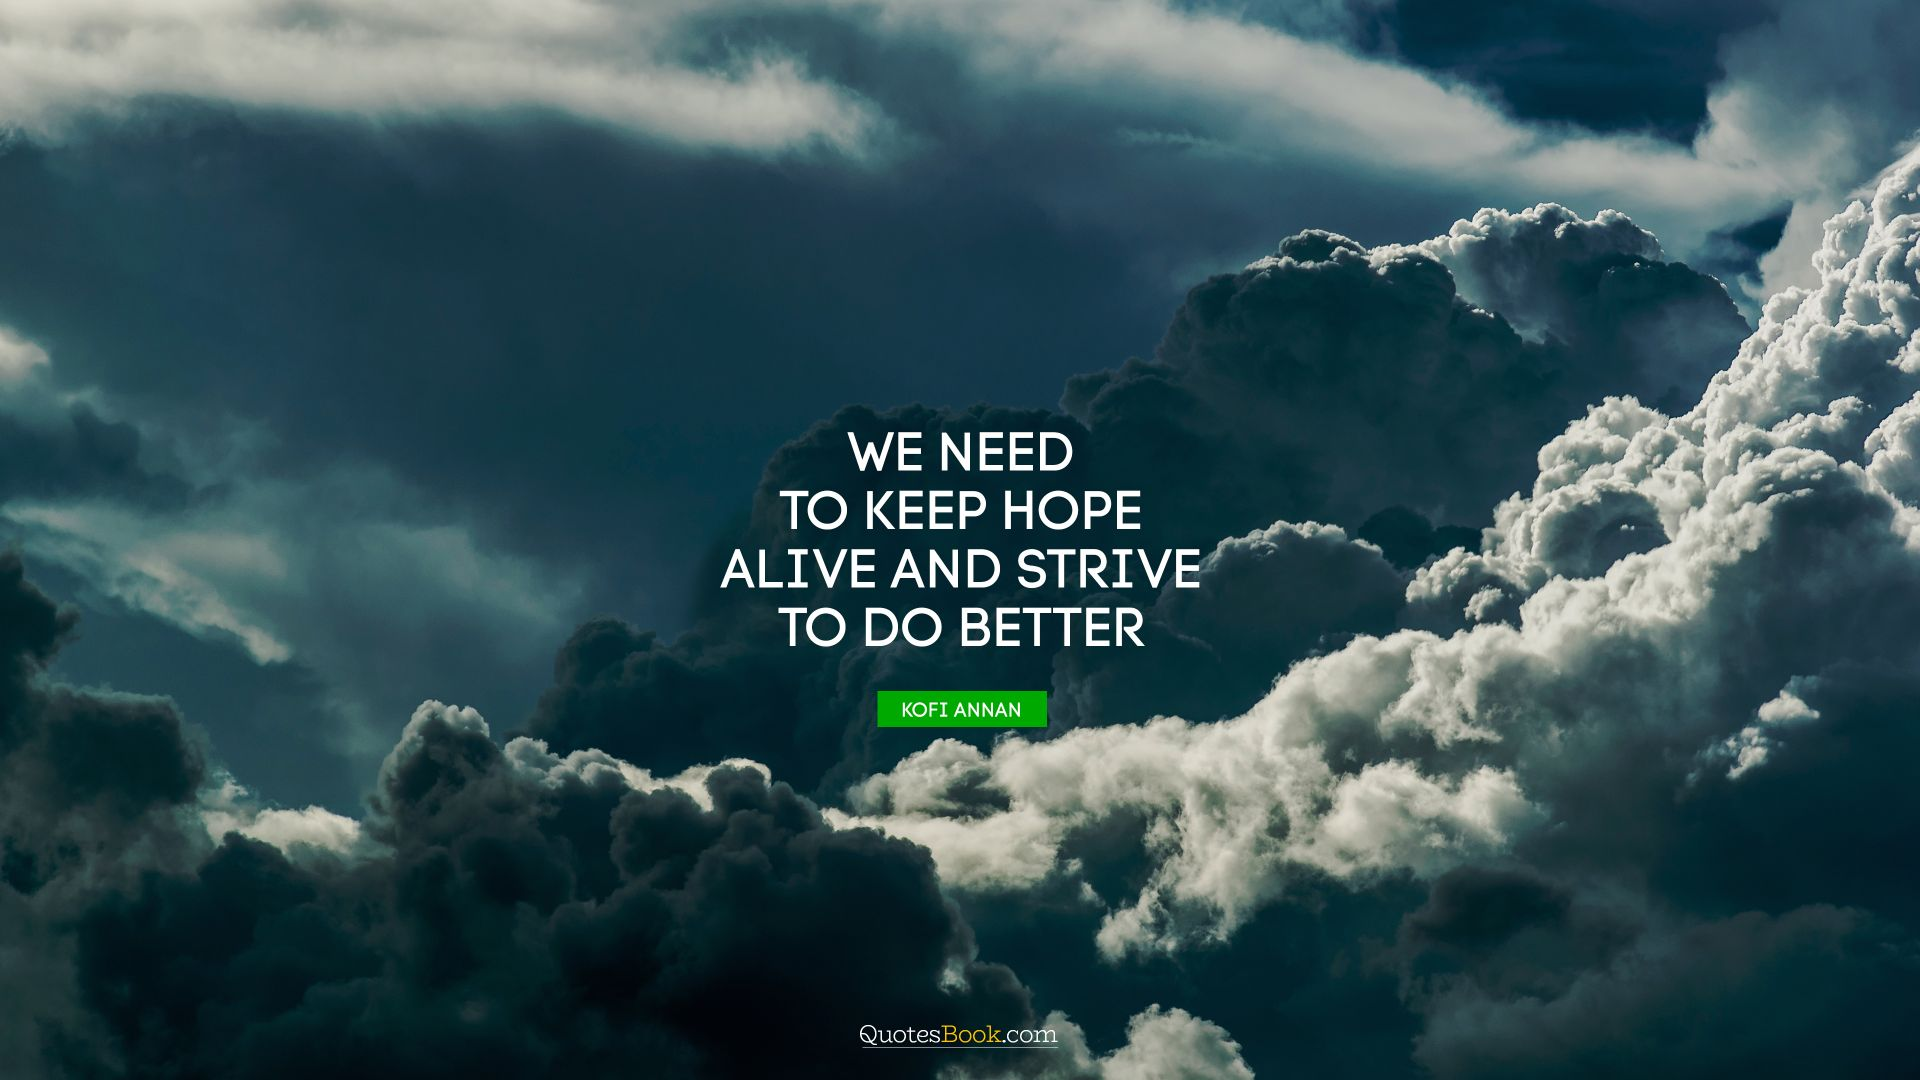 We need to keep hope alive and strive to do better. - Quote by Kofi Annan